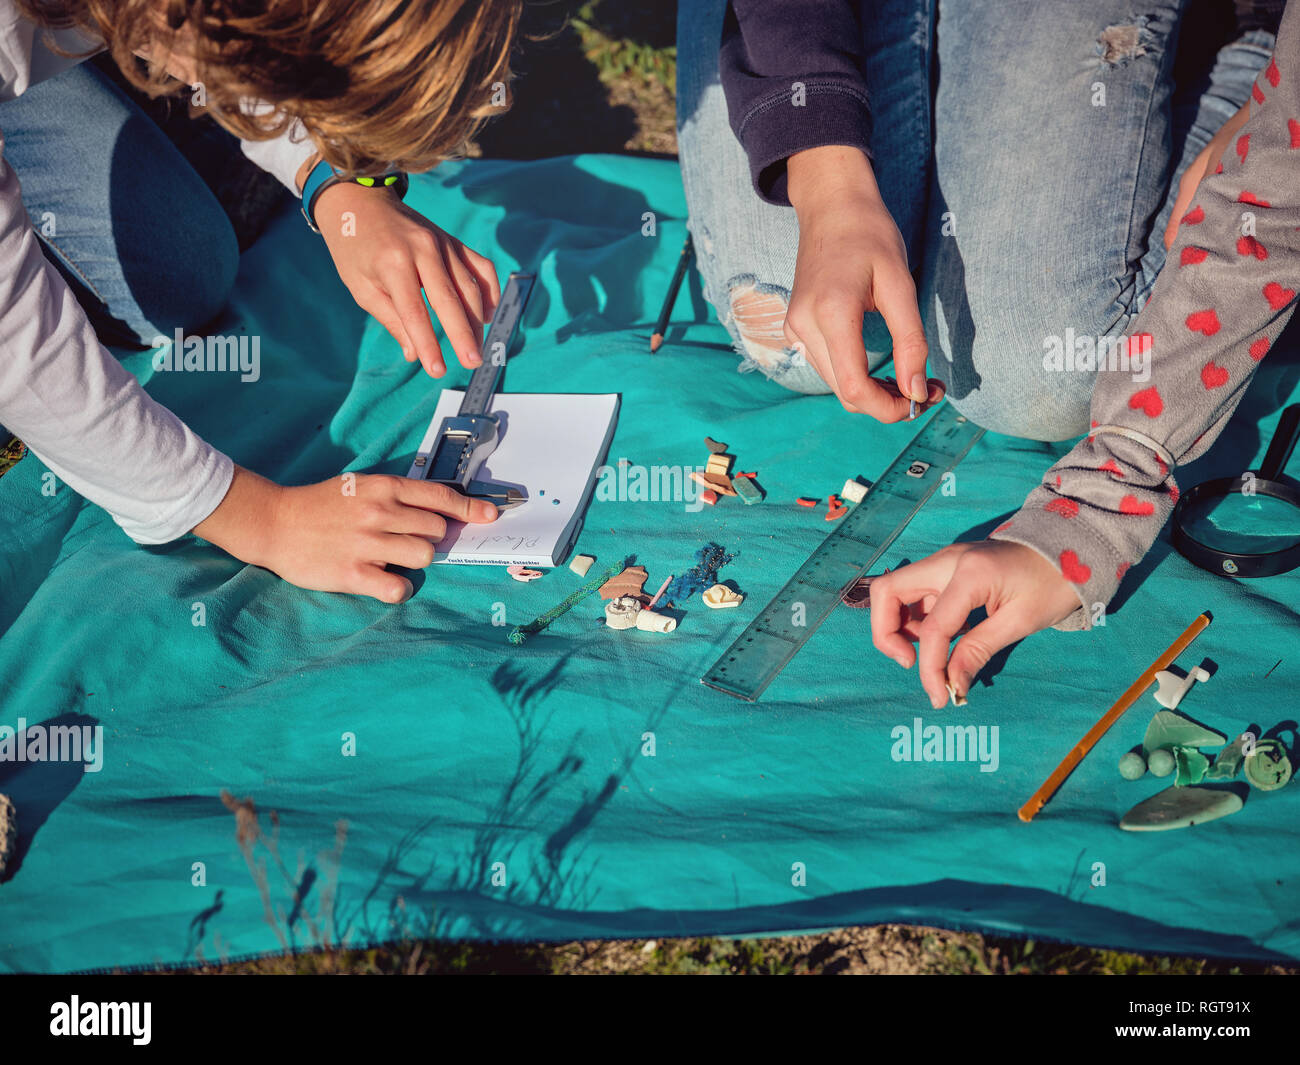 From above crop hands of persons gauging by vernier caliper little plastic things on paper on blue coverlet placed on ground - Stock Image